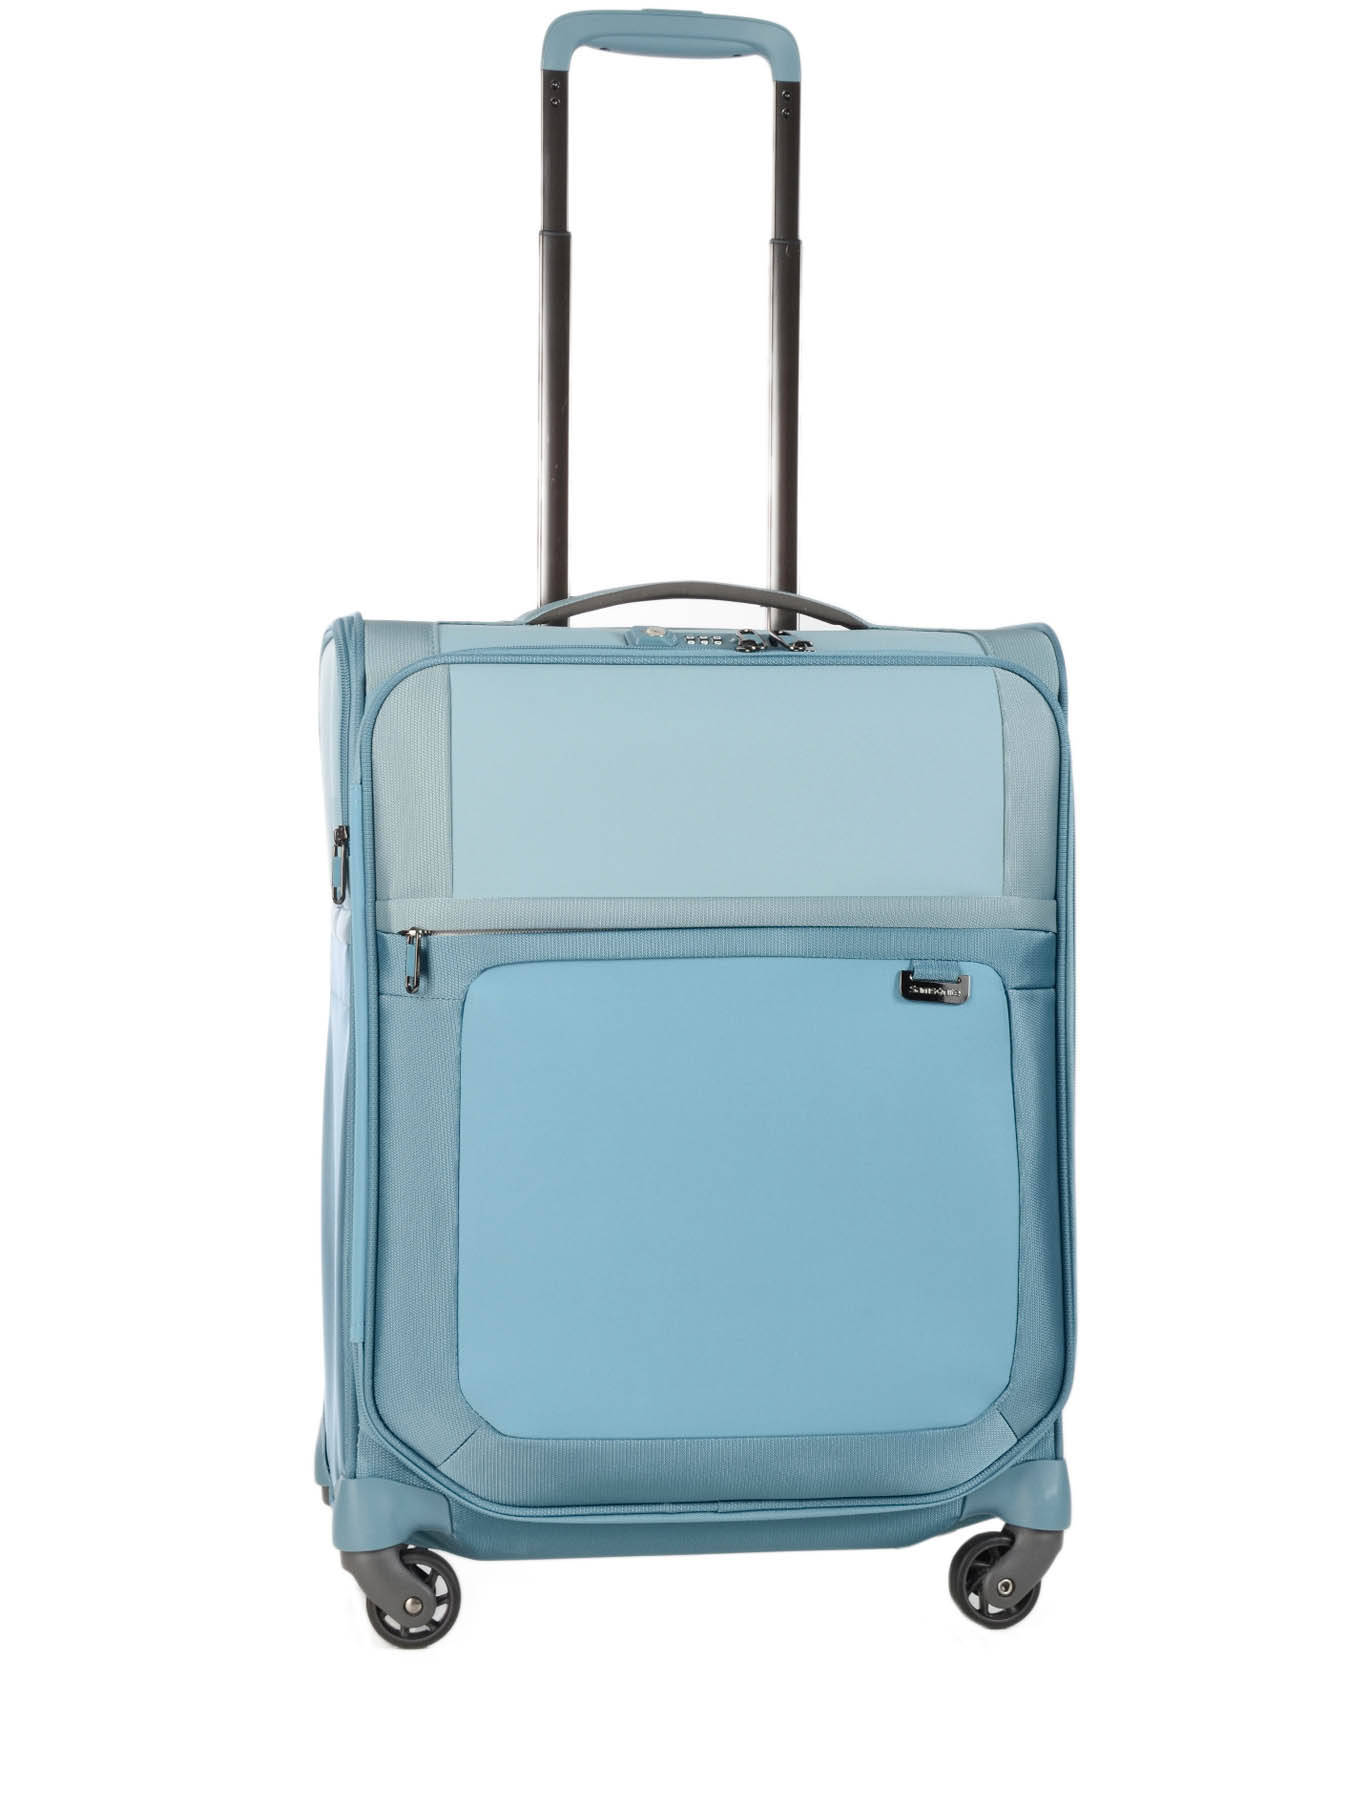 valise cabine samsonite uplite turquoise en vente au. Black Bedroom Furniture Sets. Home Design Ideas